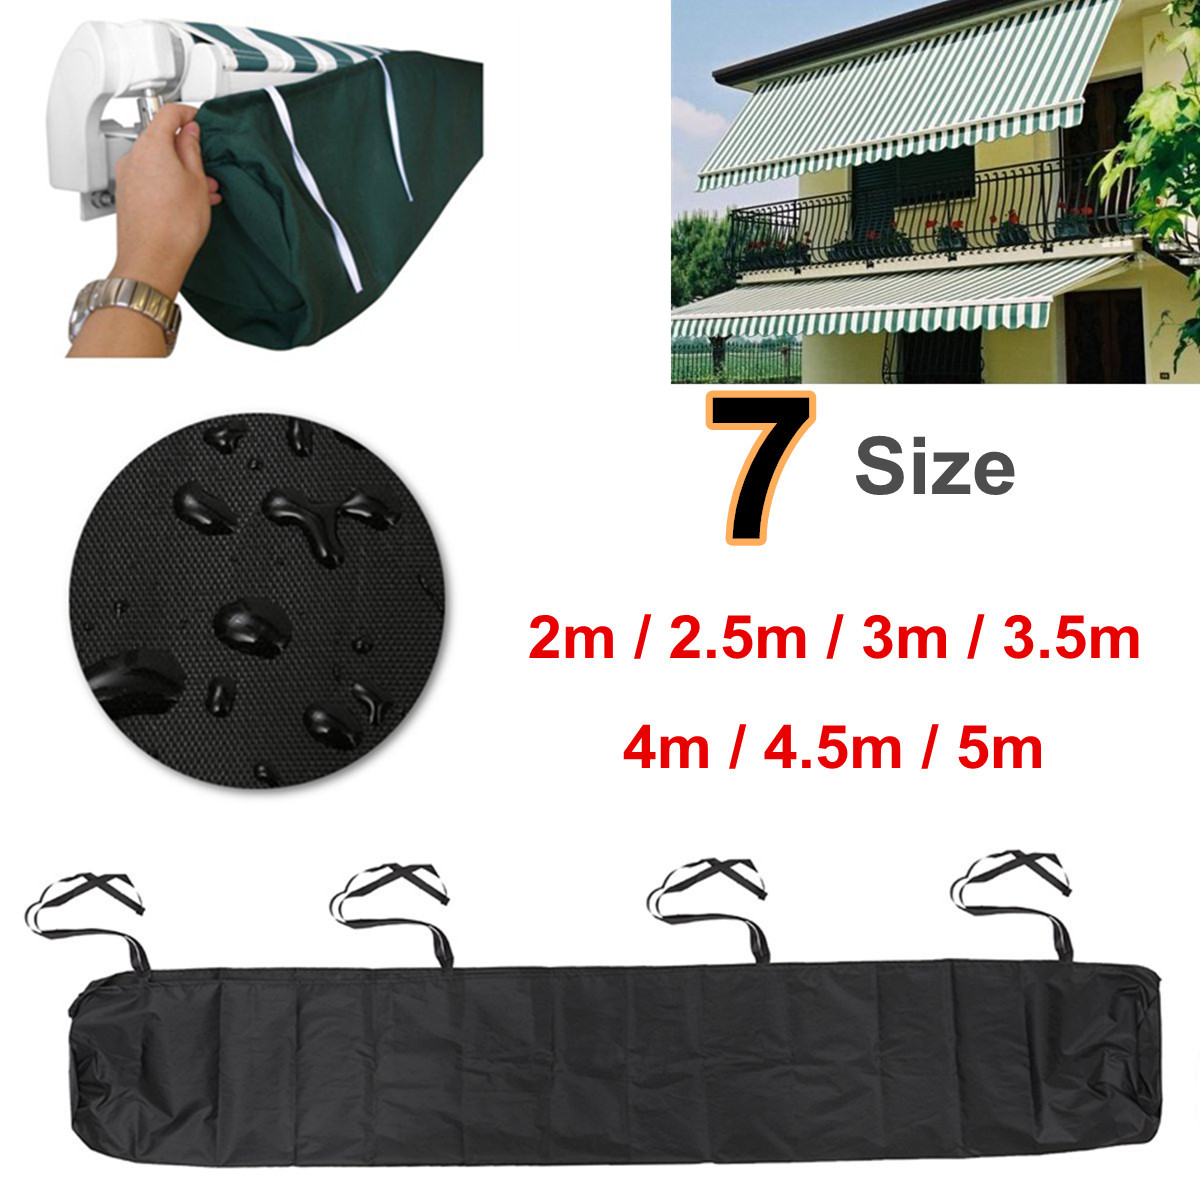 2/2.5/3/3.5/4/4.5/5m Oxford Patio Awning Winter Storage Bag Yard Garden Shelter Rain Weather Cover Protector Sun Canopy Cloth